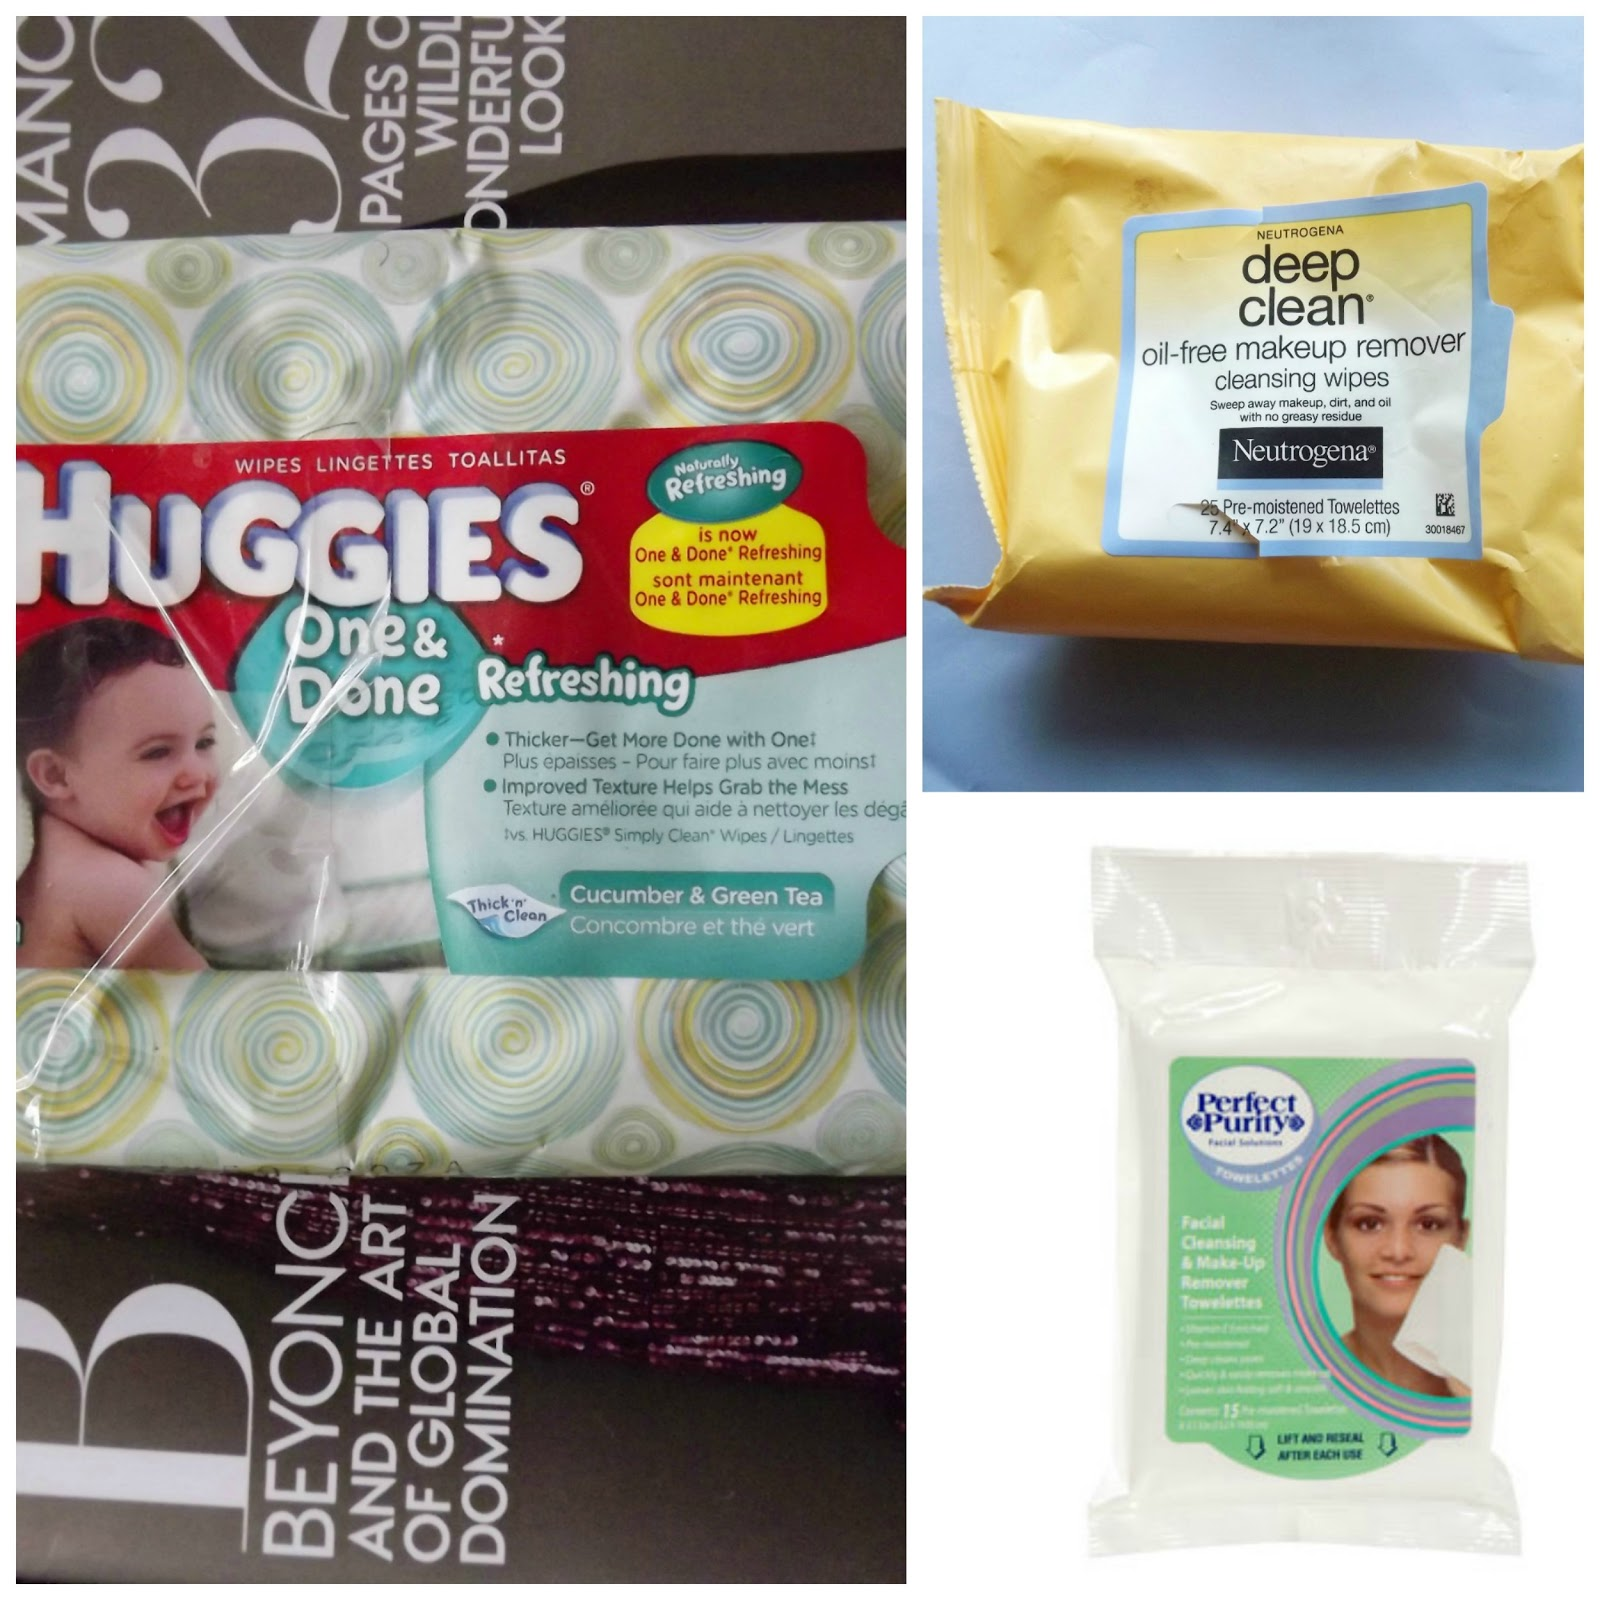 Makeup Remover Wipes Review?